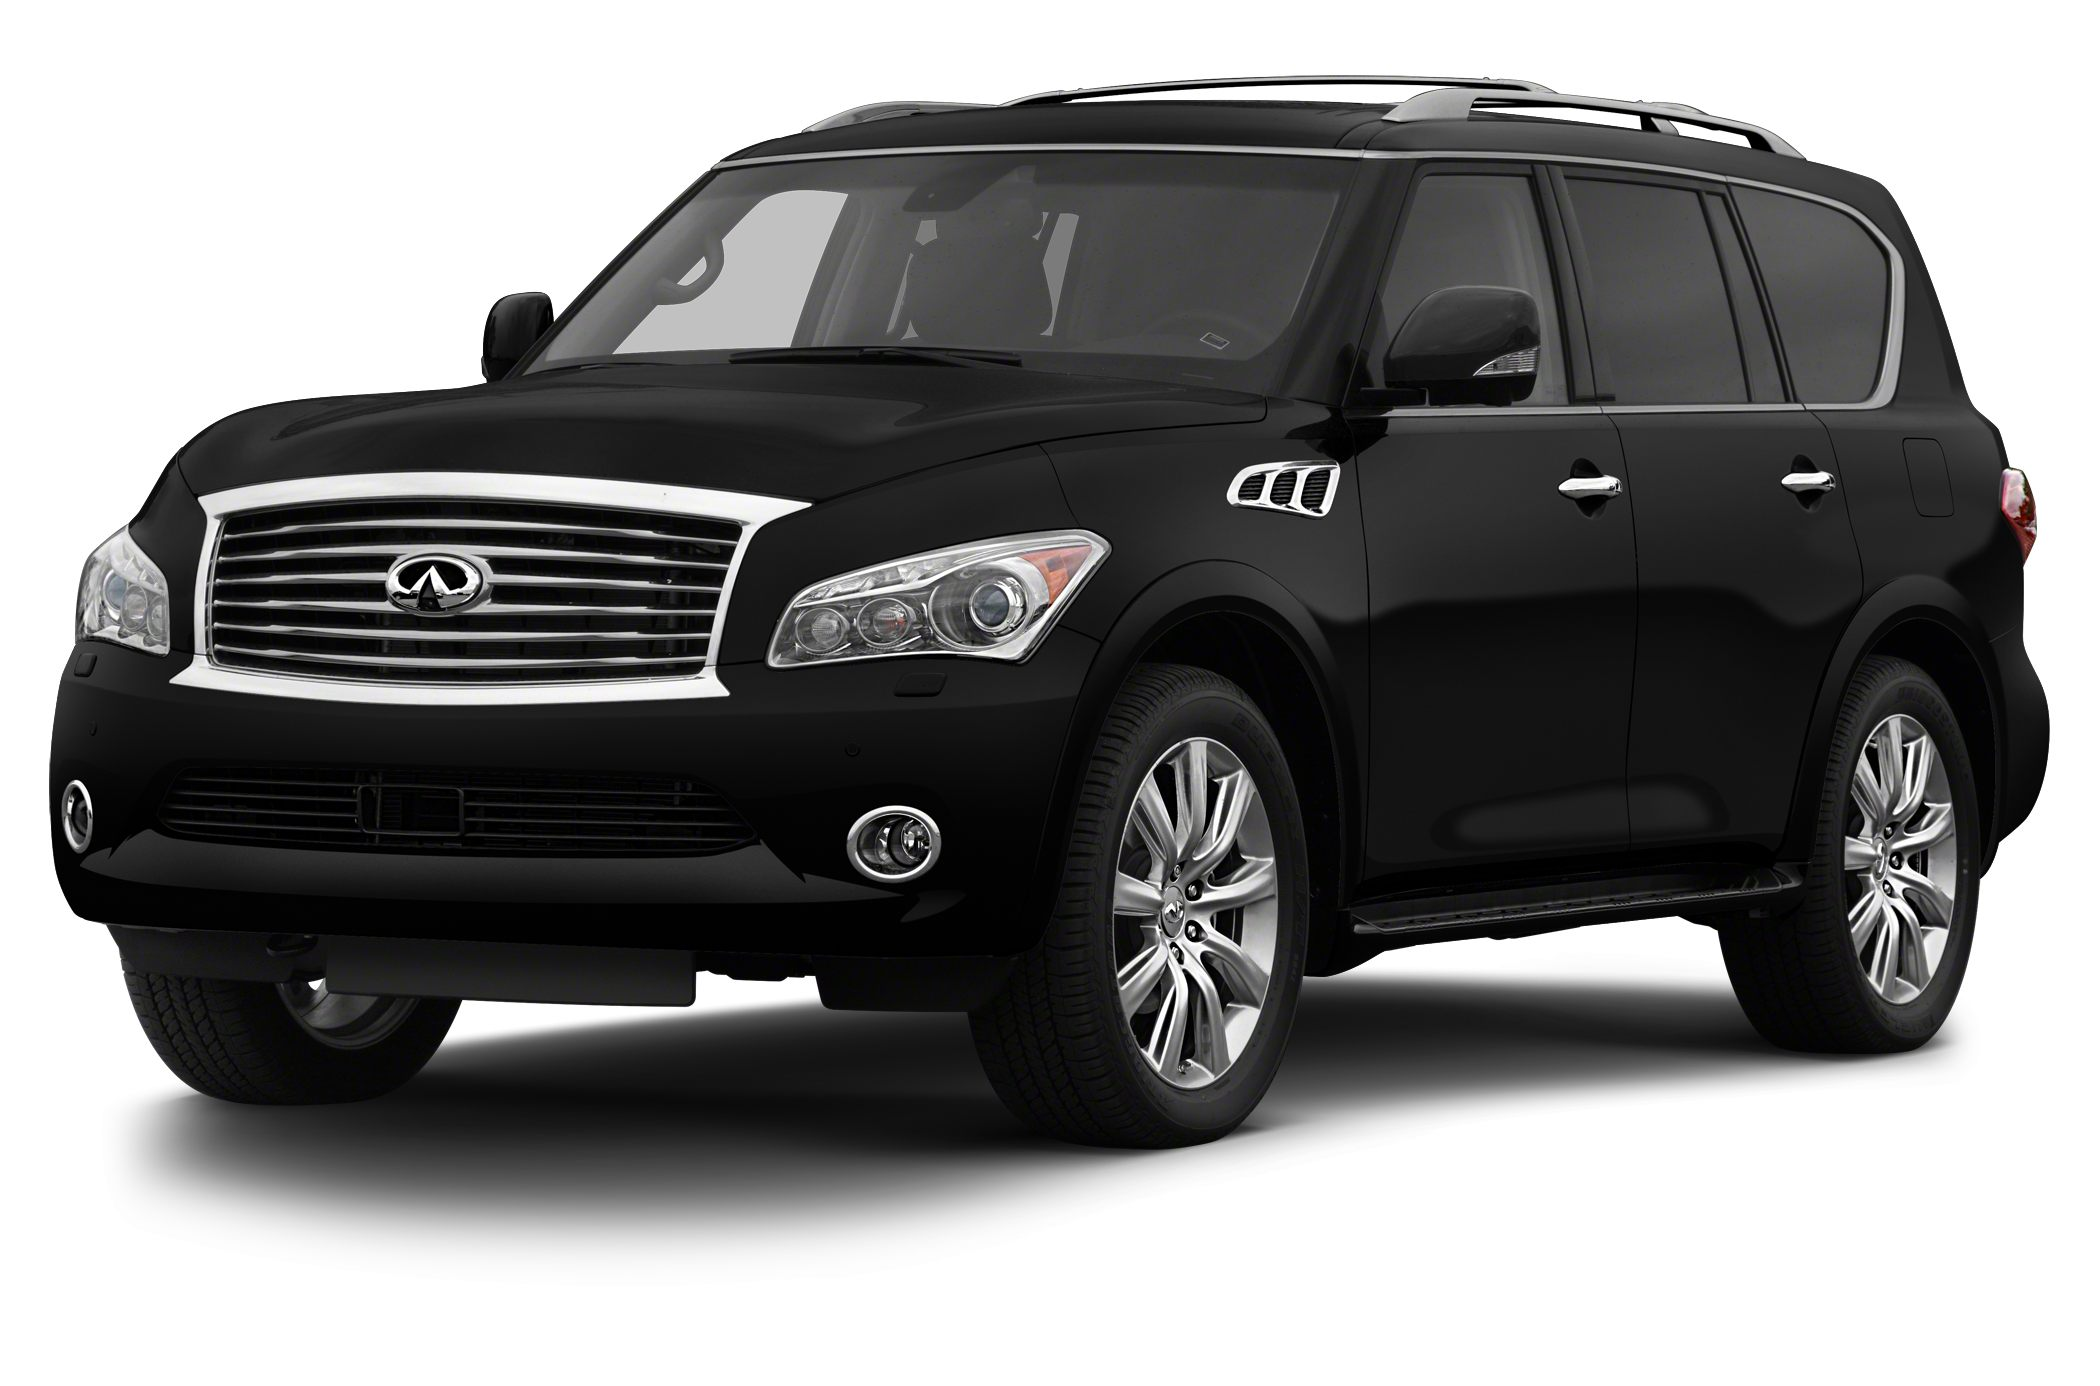 2013 Infiniti QX56 Base SUV for sale in Mcalester for $57,000 with 13,564 miles